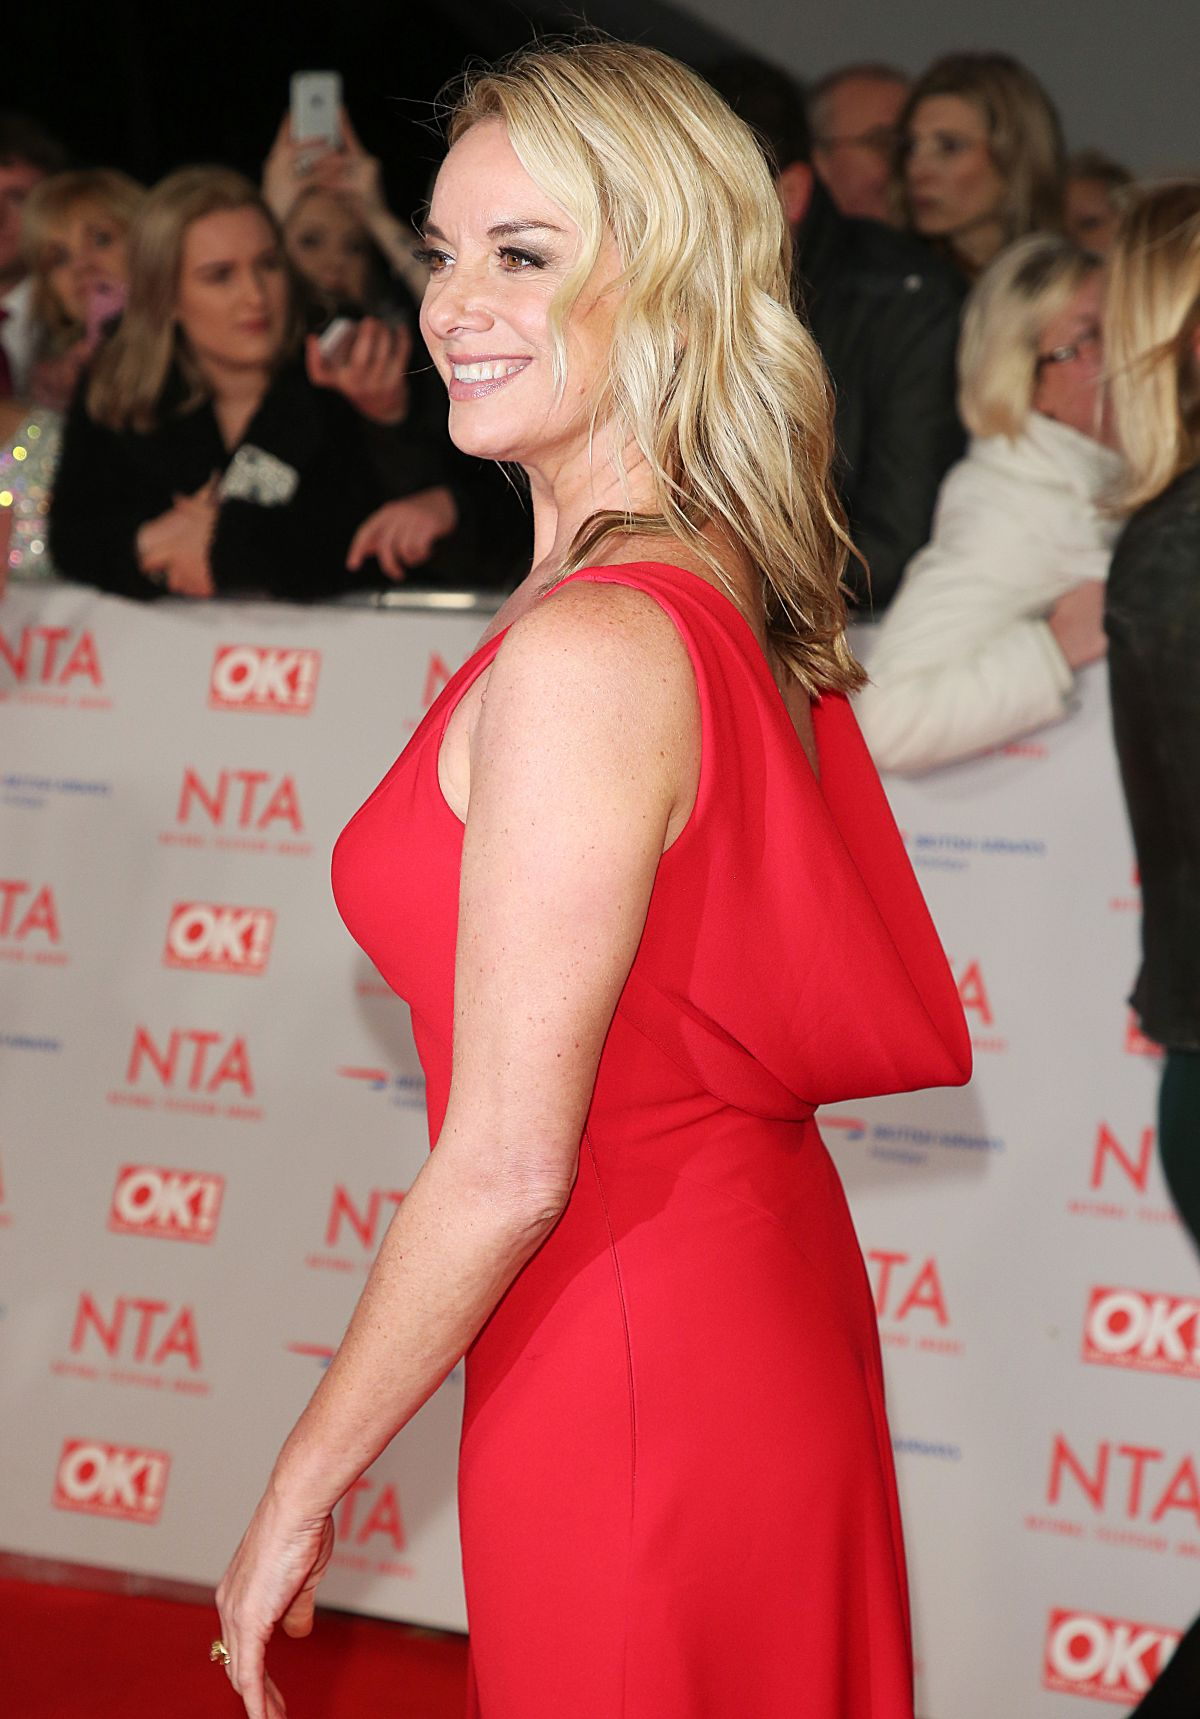 tamzin outhwaite - photo #18